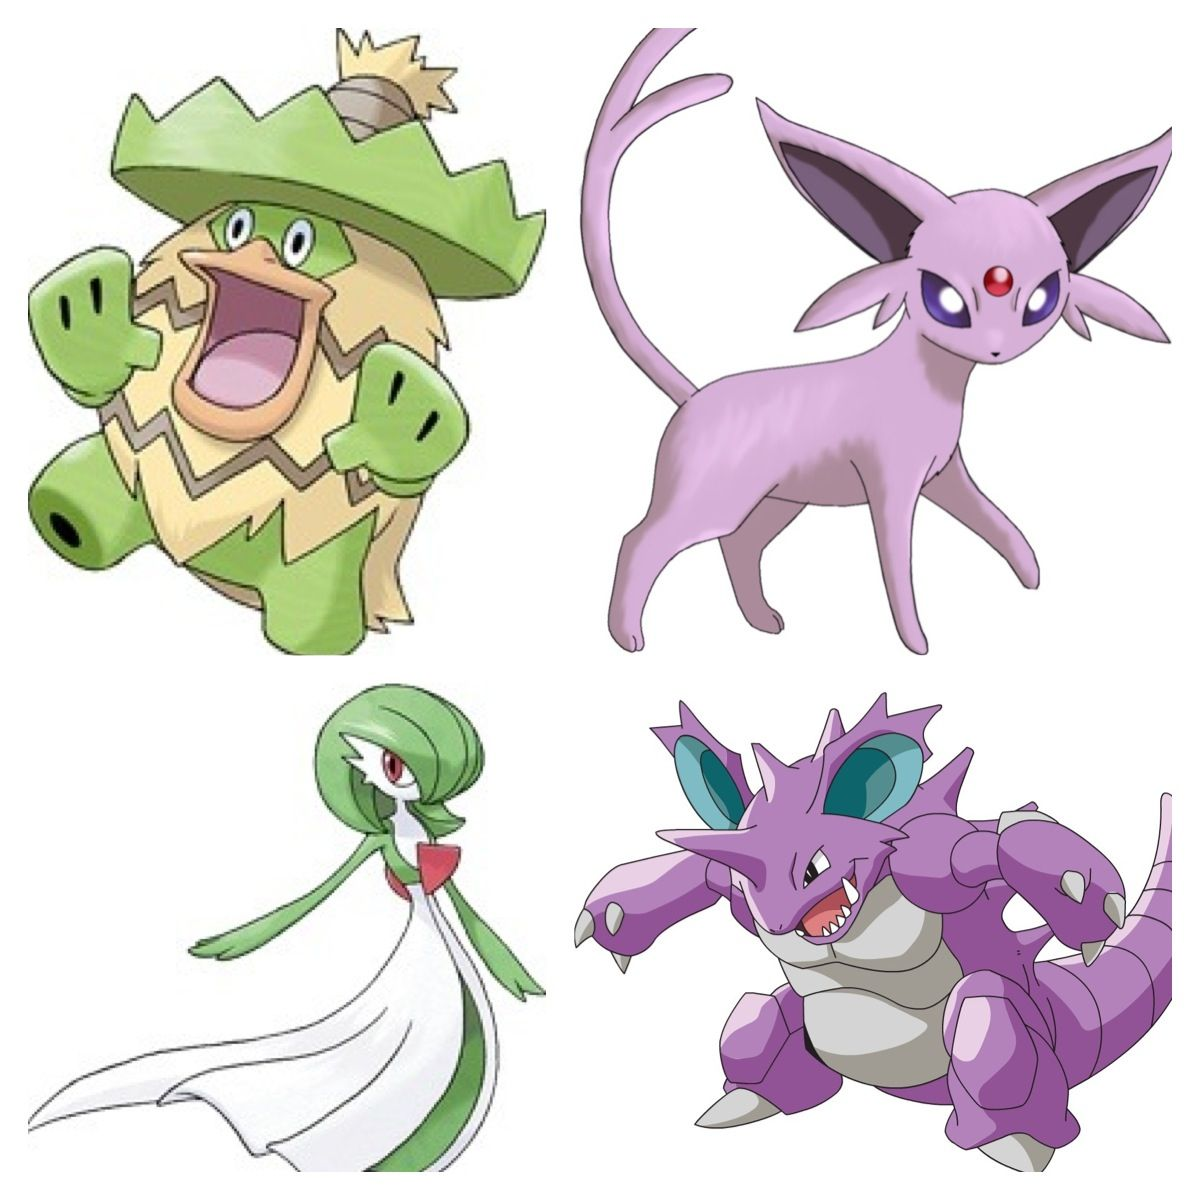 Pokemon: can't remember first one's name, Espeon, can't spell third one's name & Nidoking